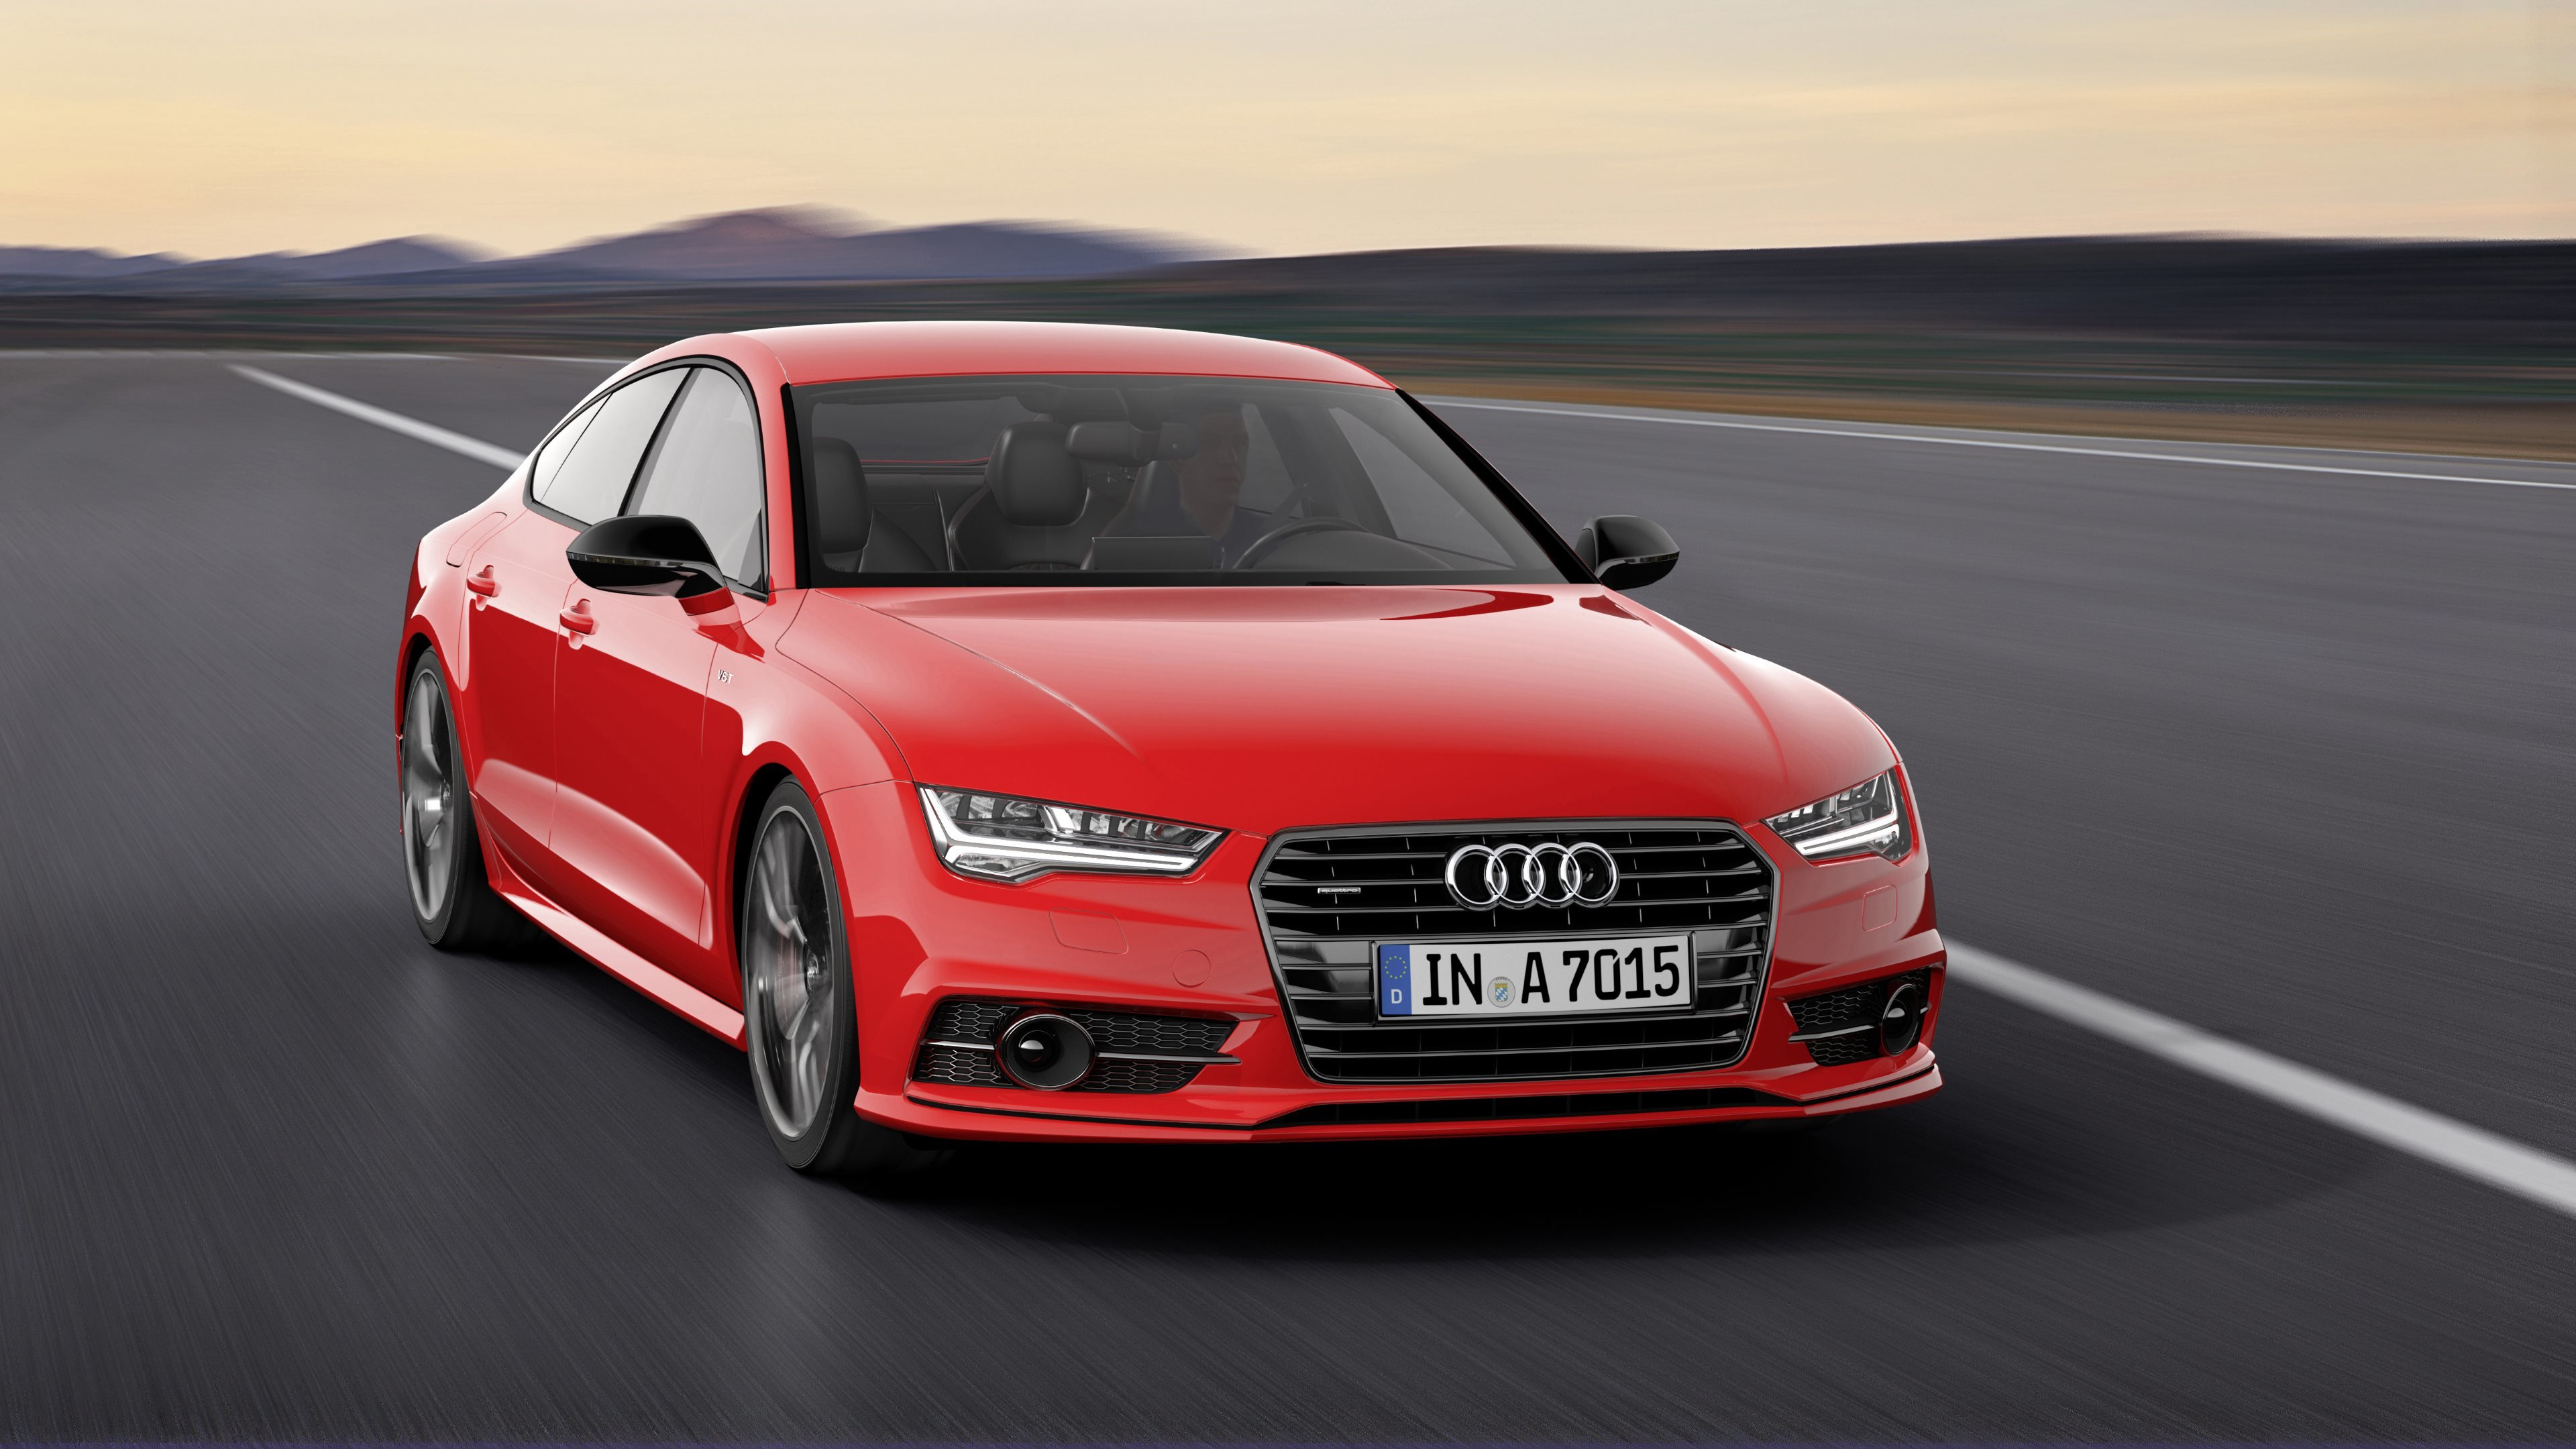 Audi A7 Wallpapers Hd For Desktop Backgrounds